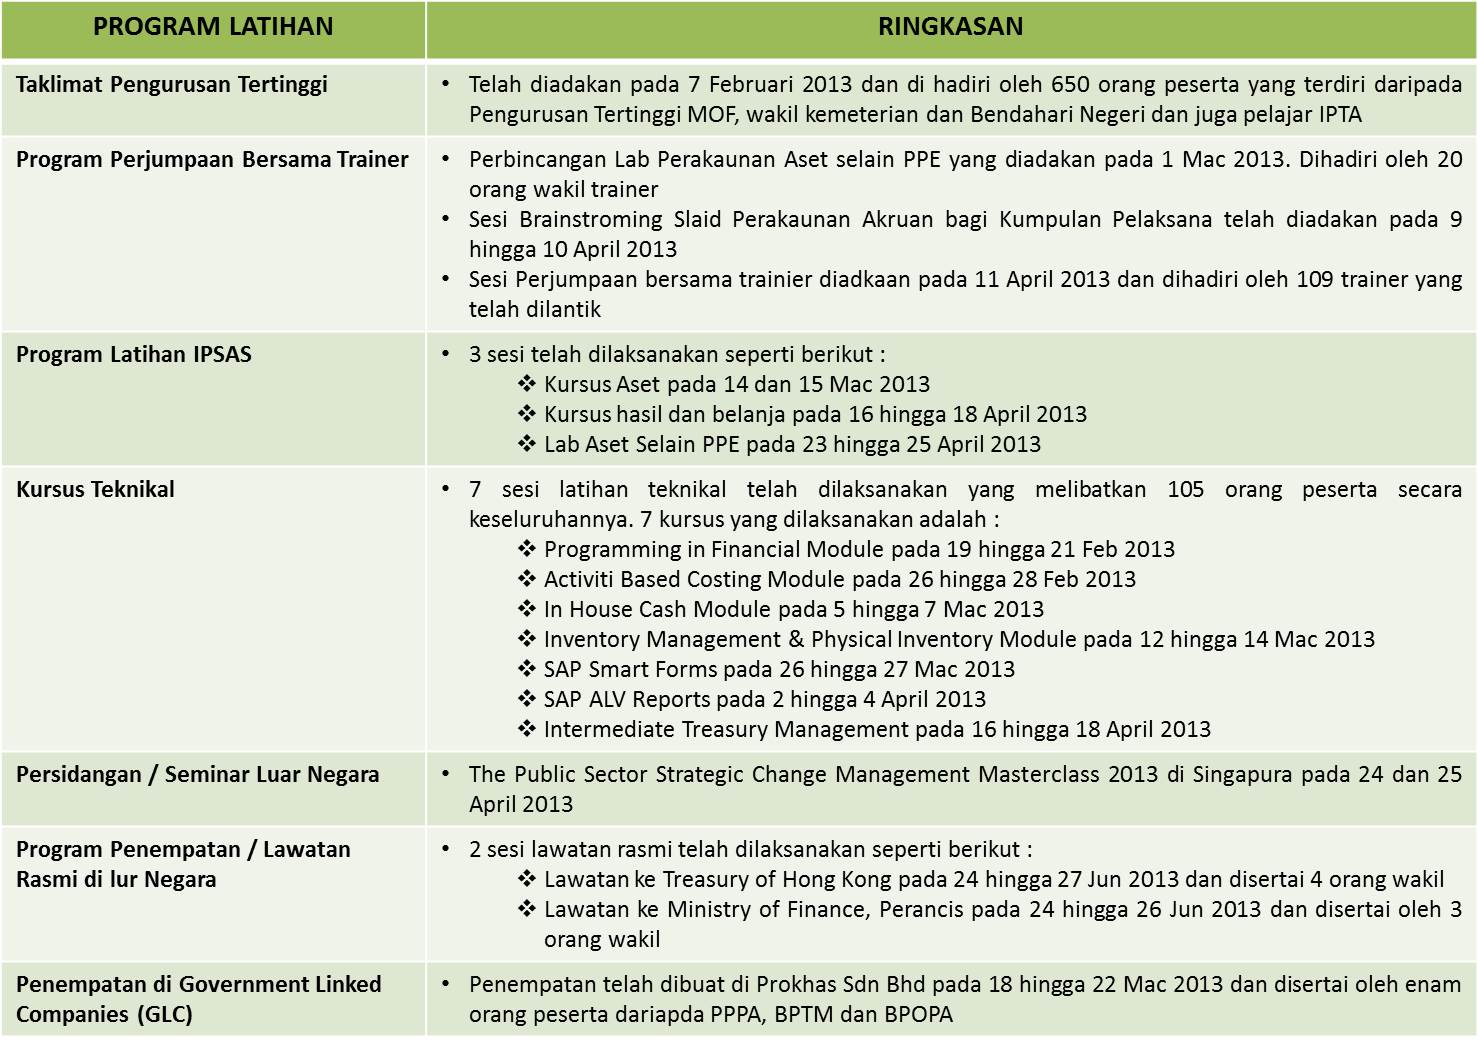 program latihan 2013.jpg